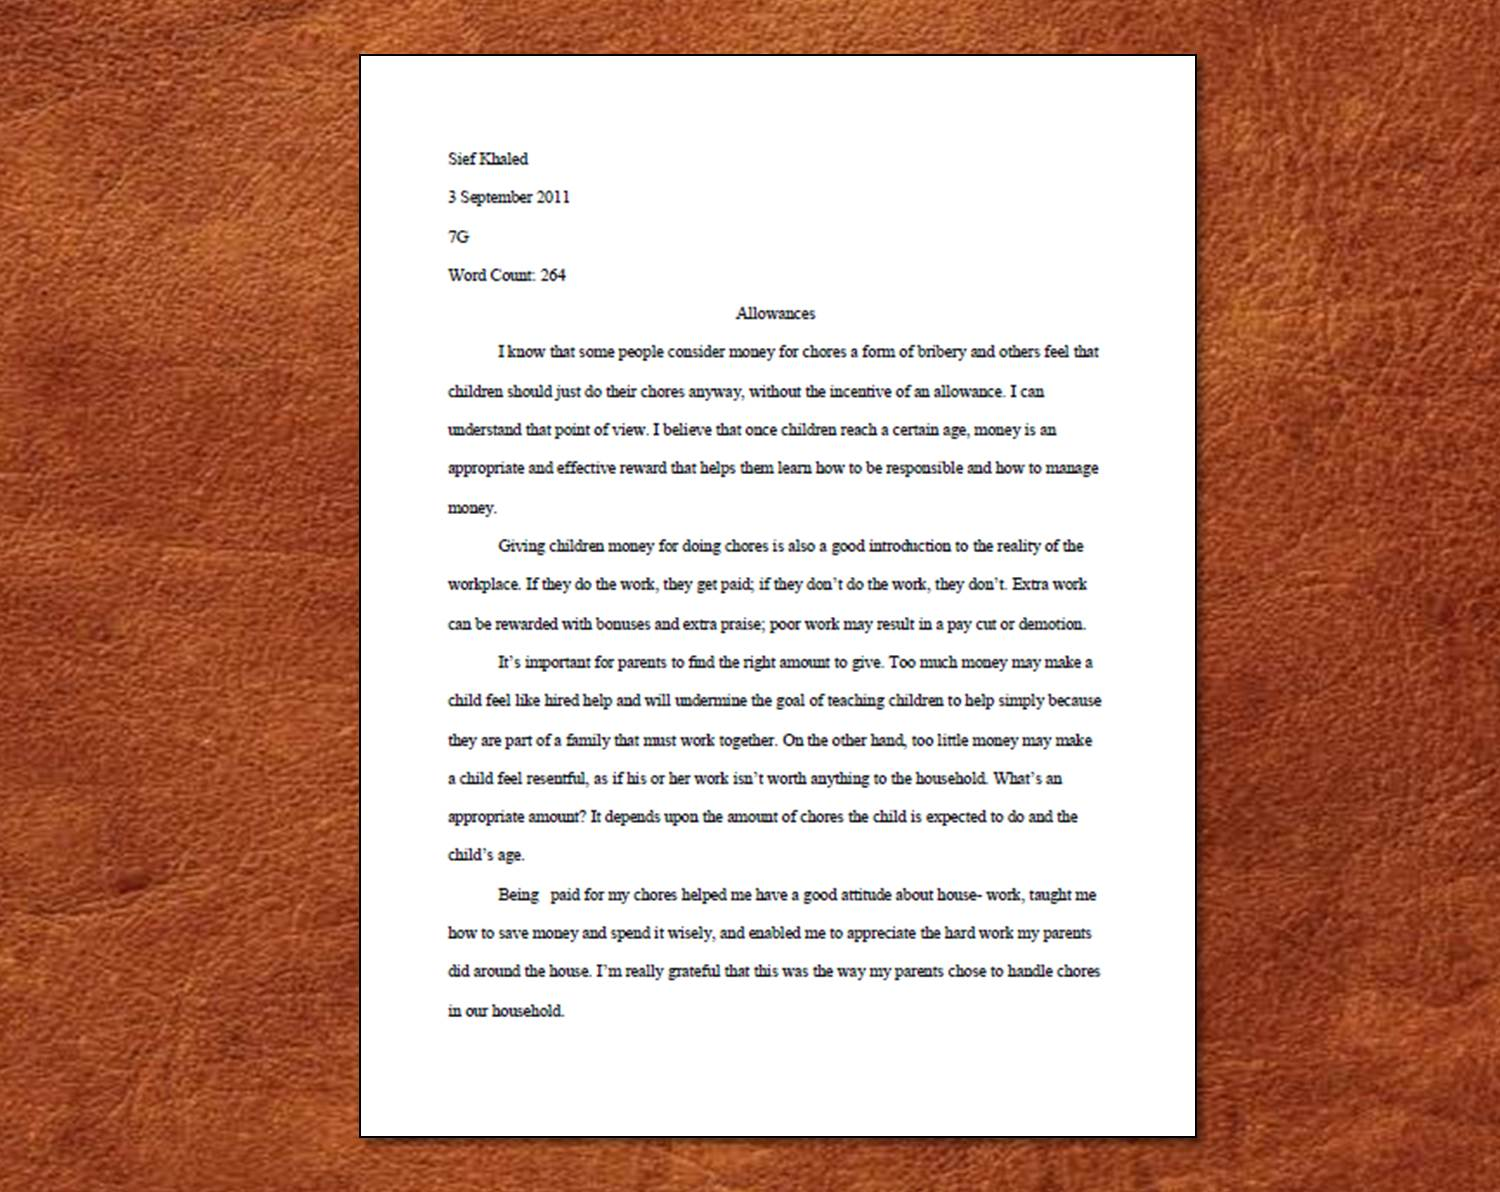 written journals essays A complete list of writing articles to help you with content marketing, creative writing, inspiration, and much more got a fave add it in the comments.